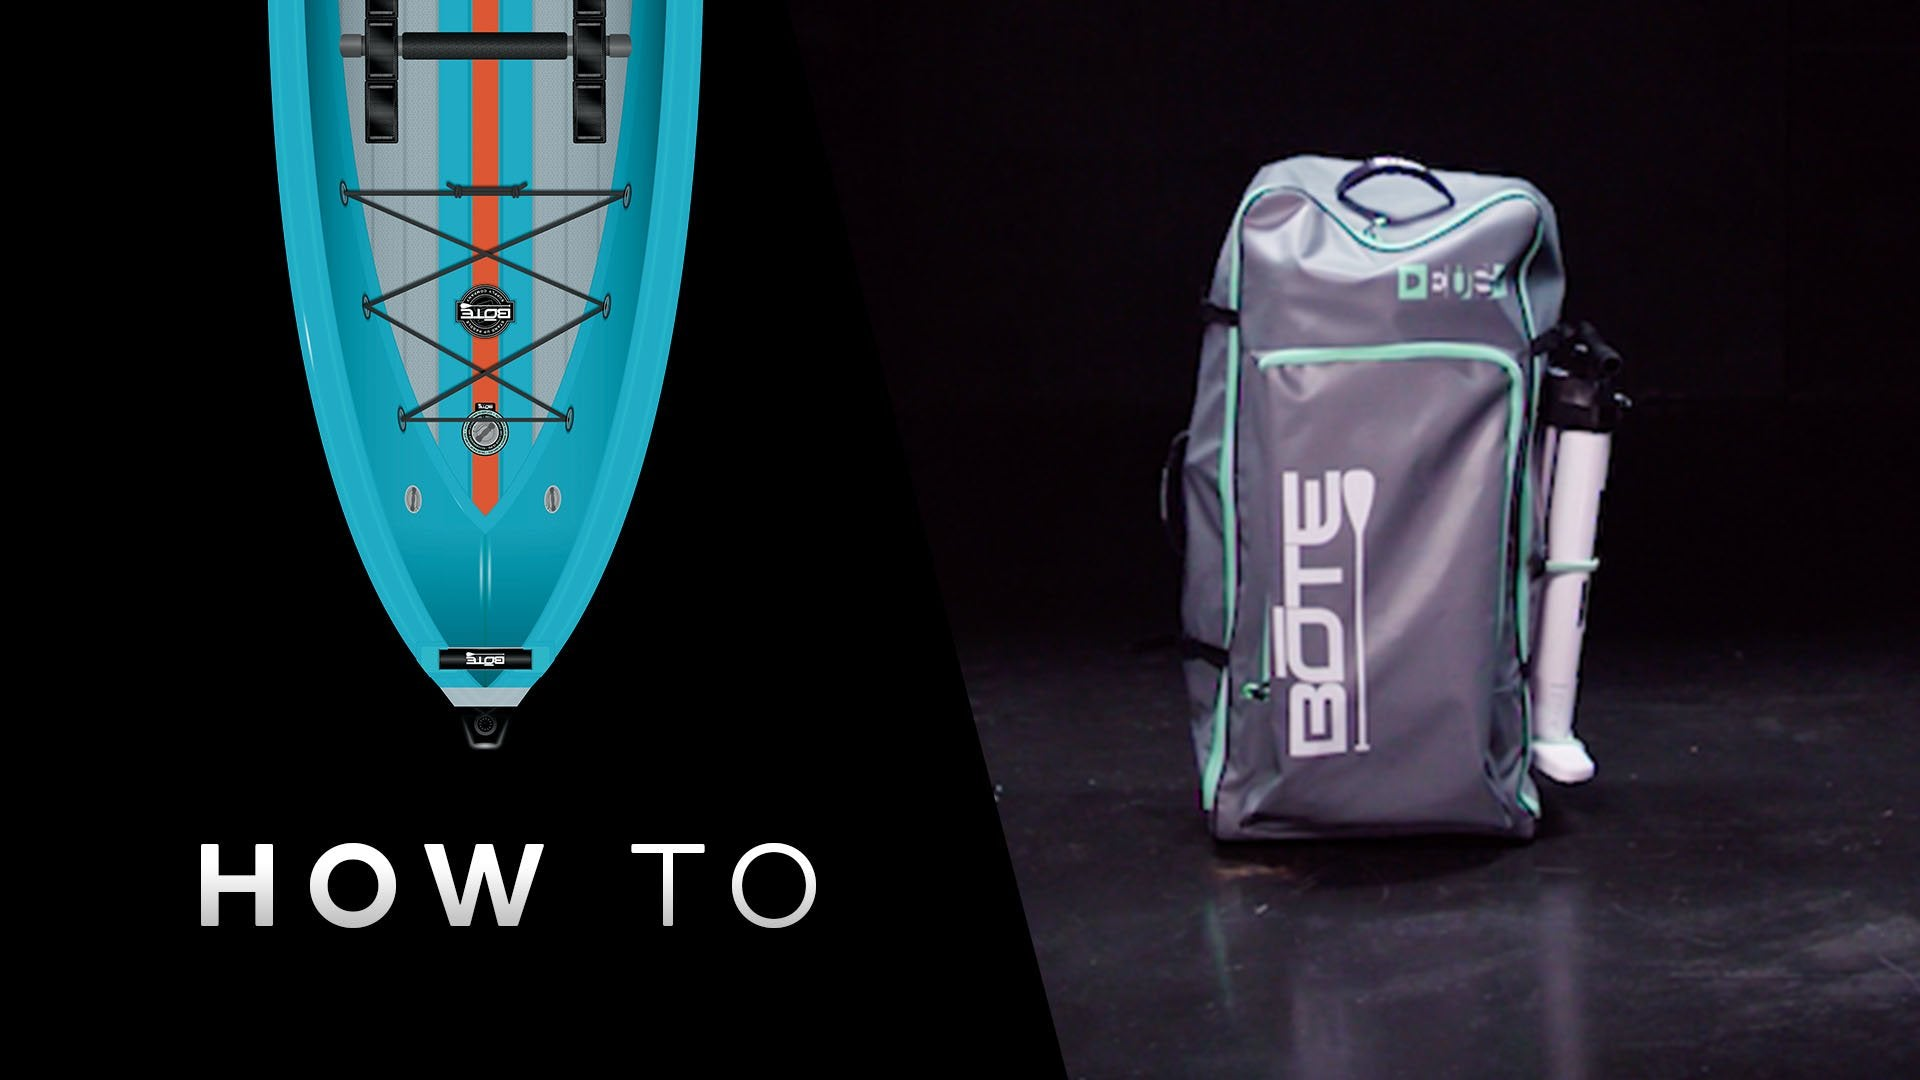 How to Fold the DEUS Aero Kayak